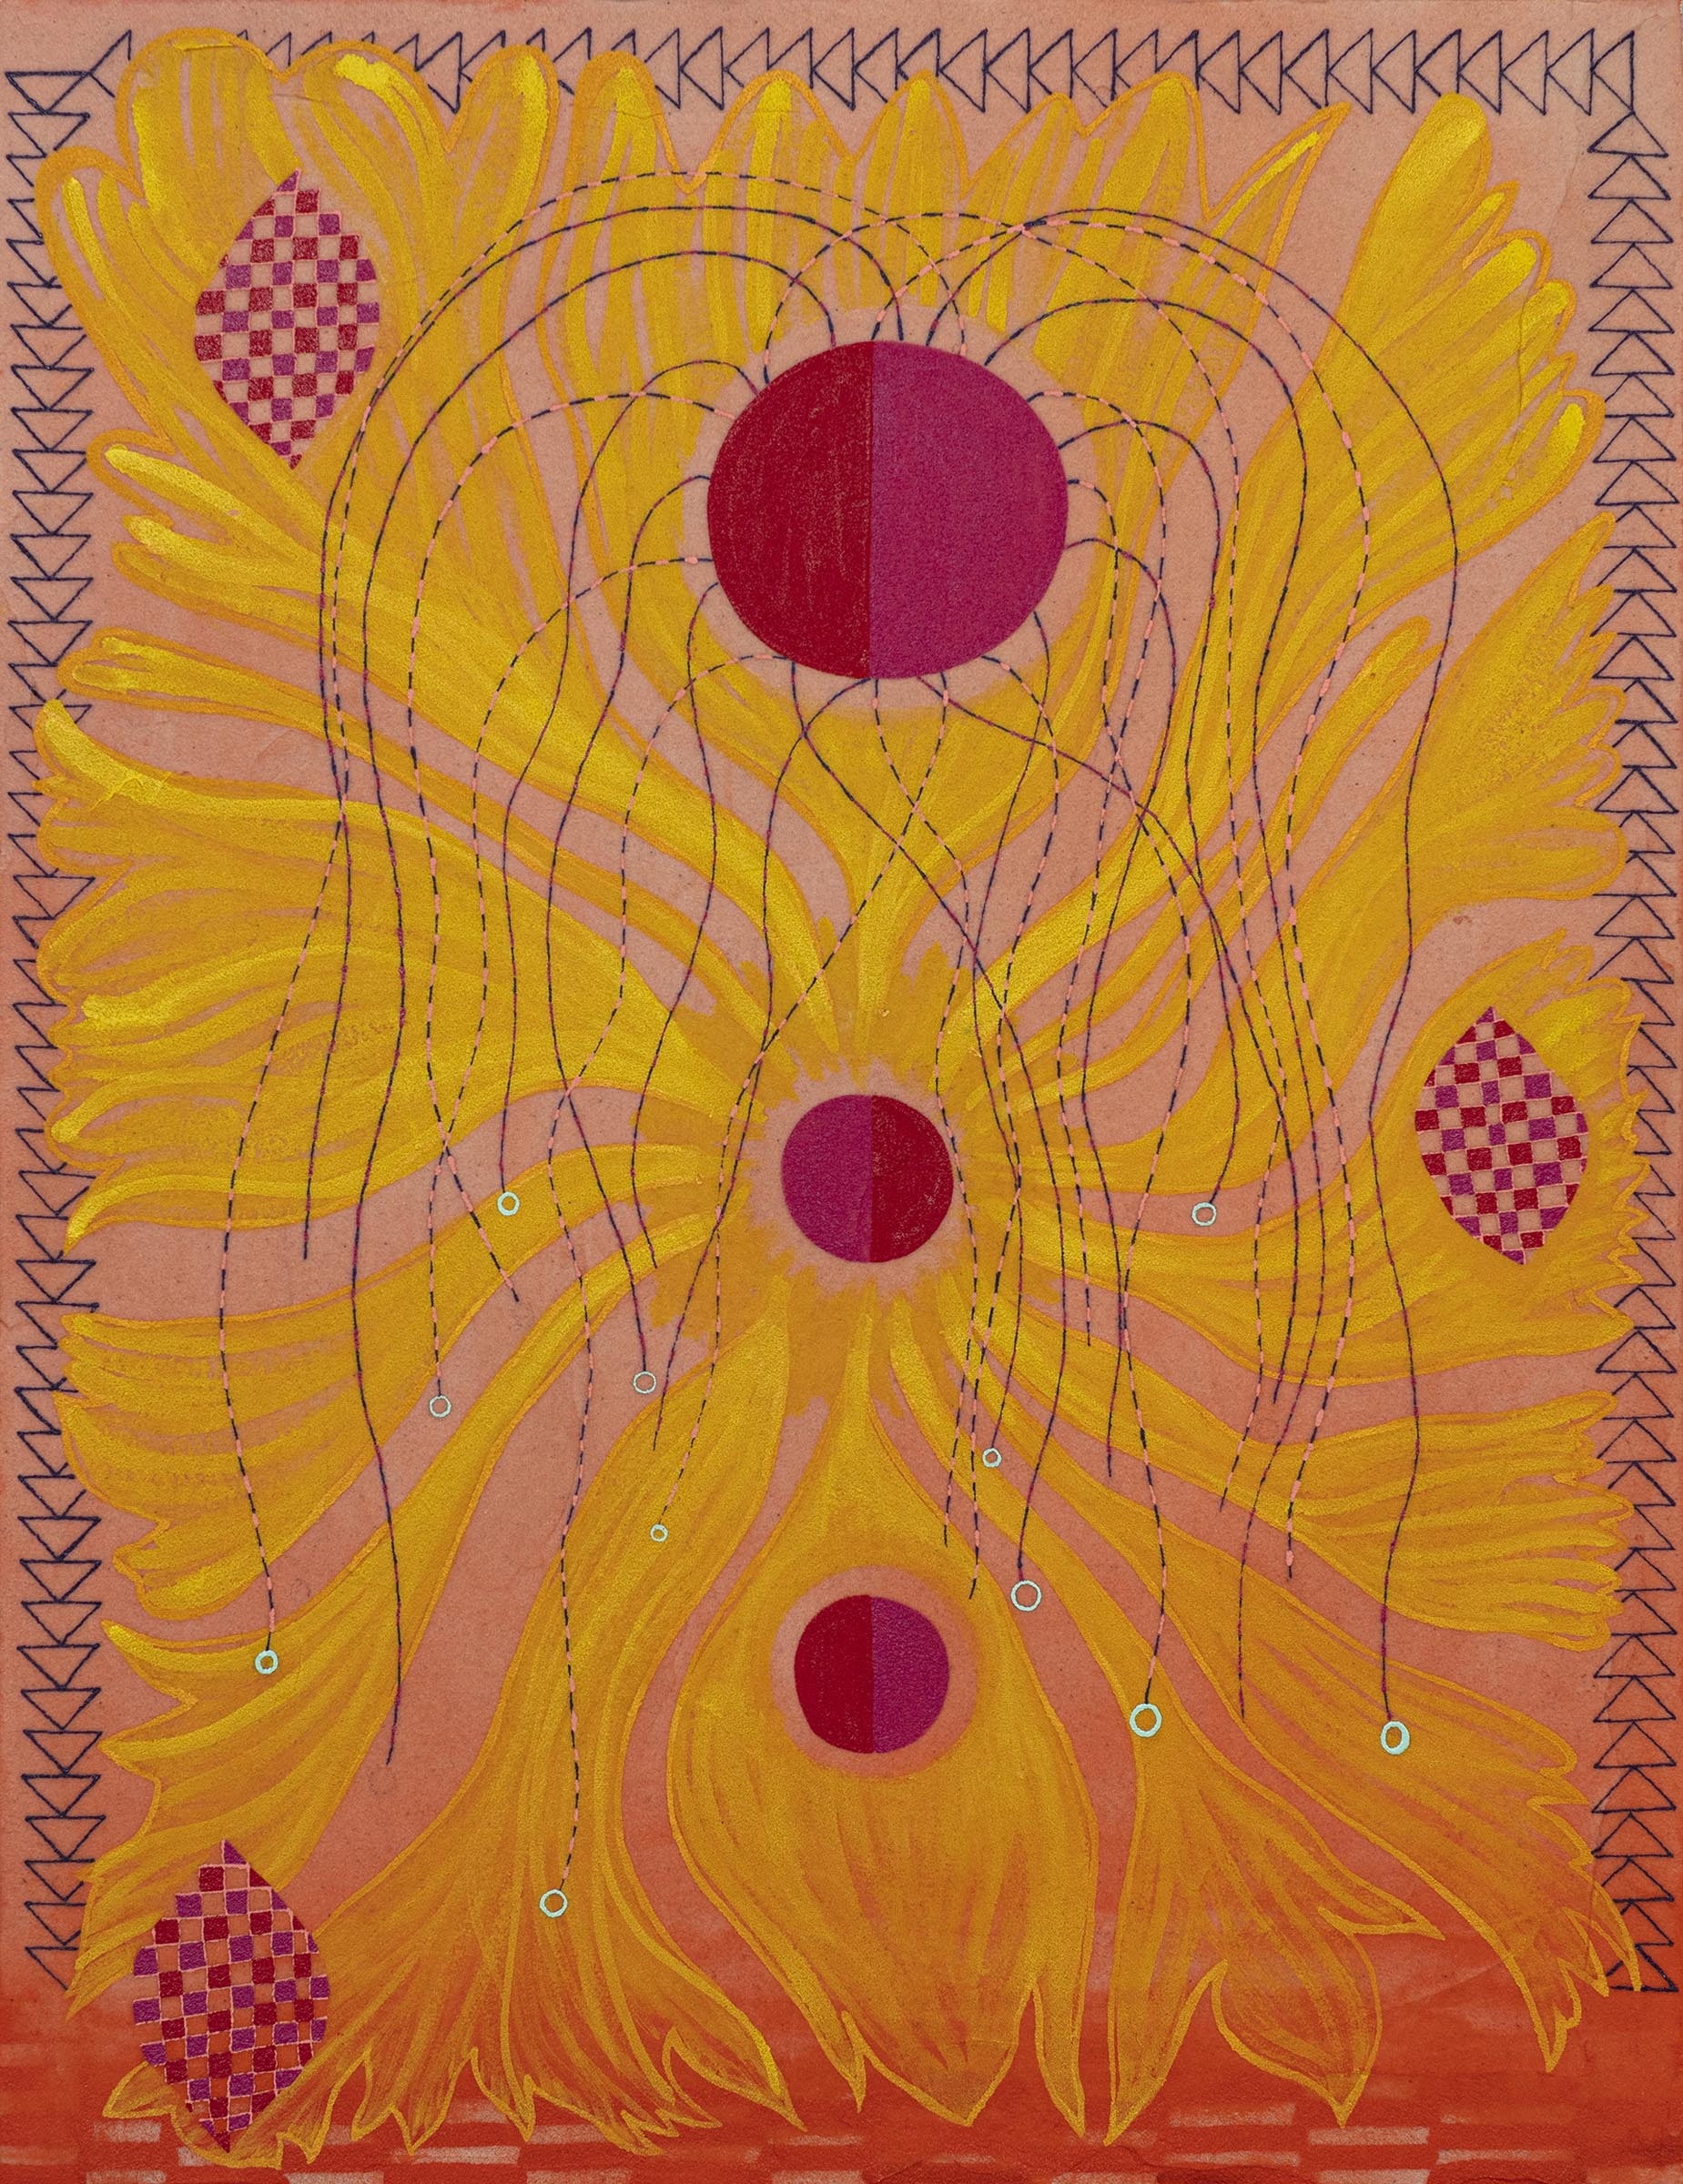 Natessa Amin, I Plunge my Hands into the Sun, Acrylic on canvas, 20